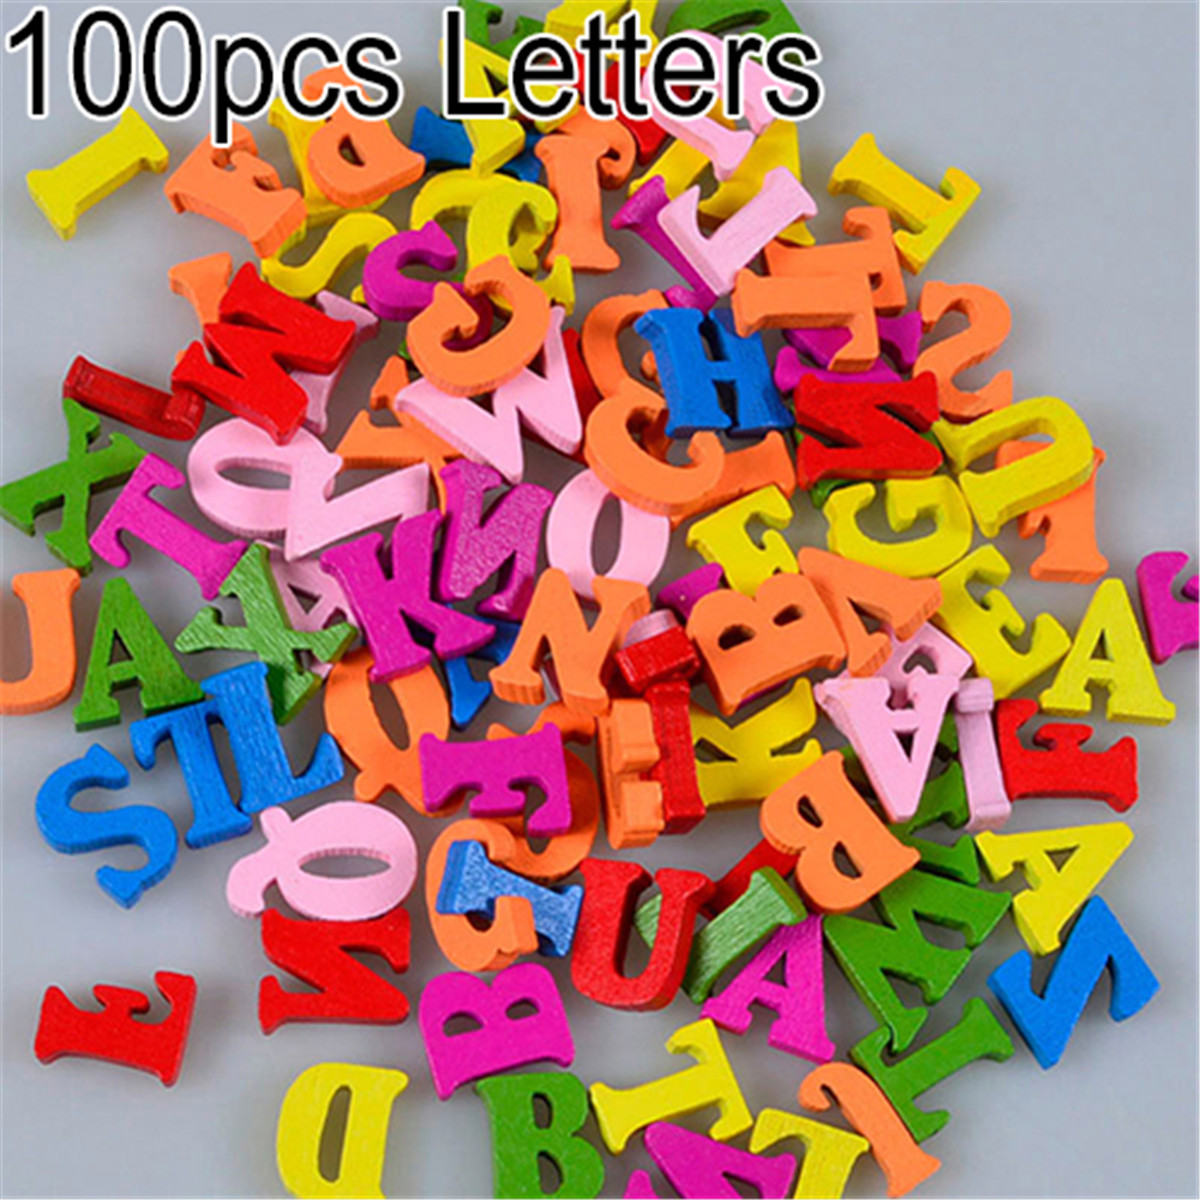 New Arrival 100Pcs Colorful Letters Numbers Wooden Flatback Cute Fridge Magnets  DIY Home Decoration Accessories